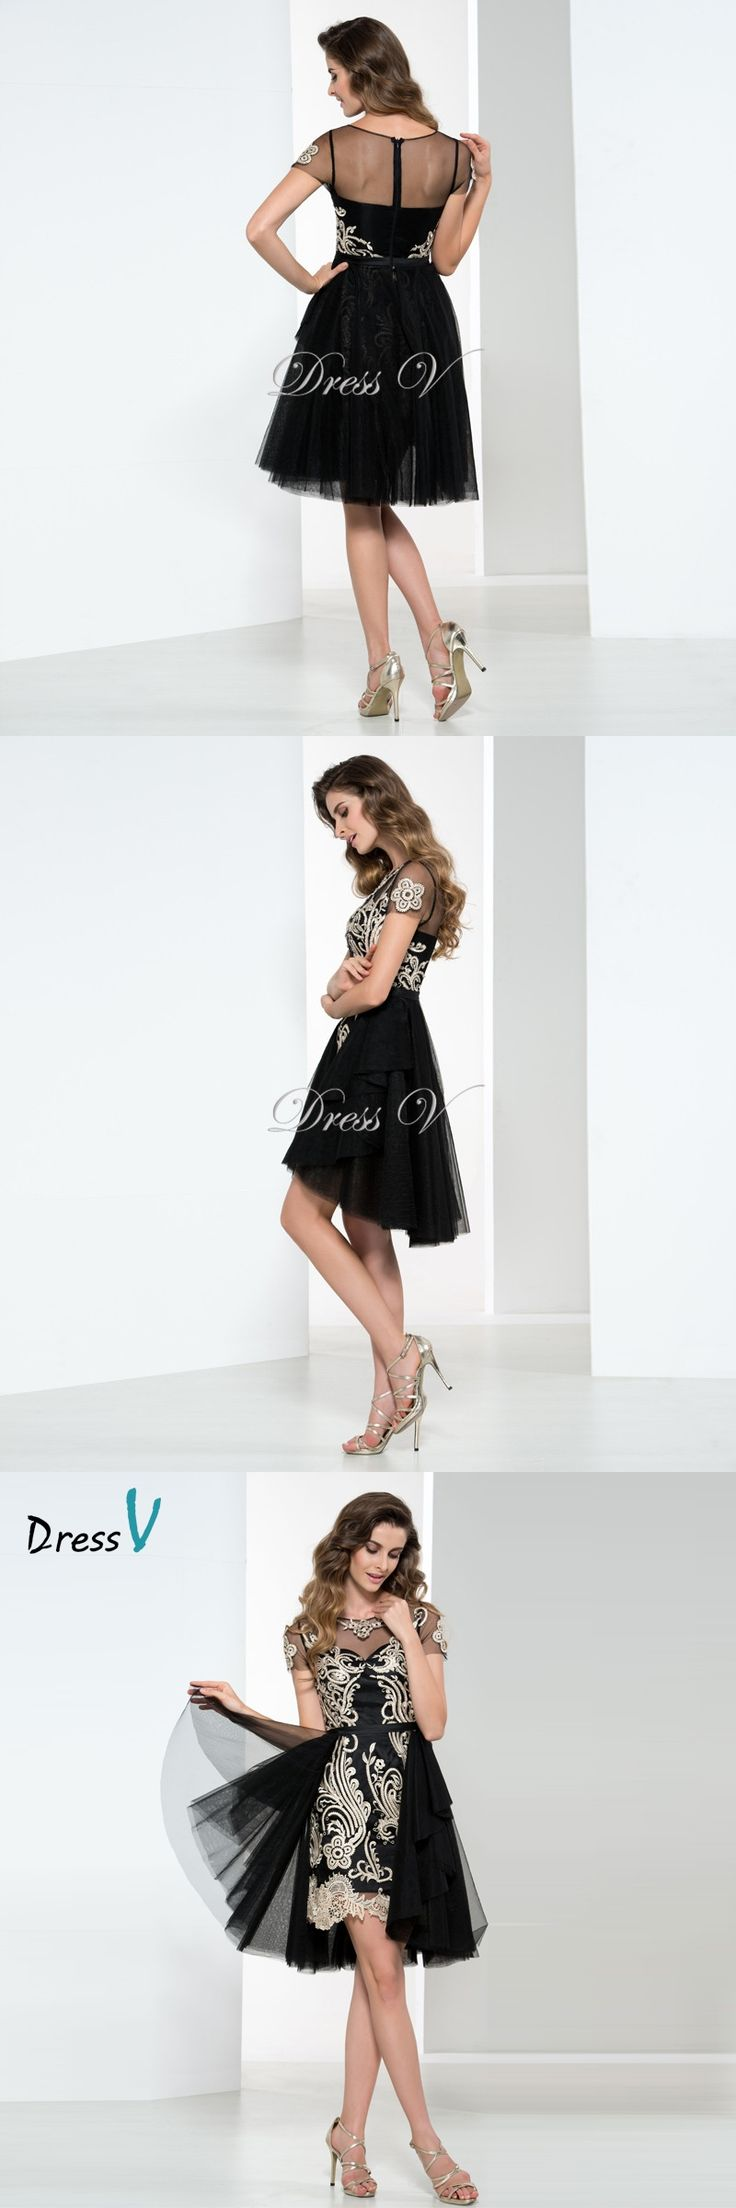 Dressv Black And Gold Lace Applique Cocktail Dresses Short Sleeves 2017 Applique A-Line Sexy Party Dress Above Knee Prom Gown